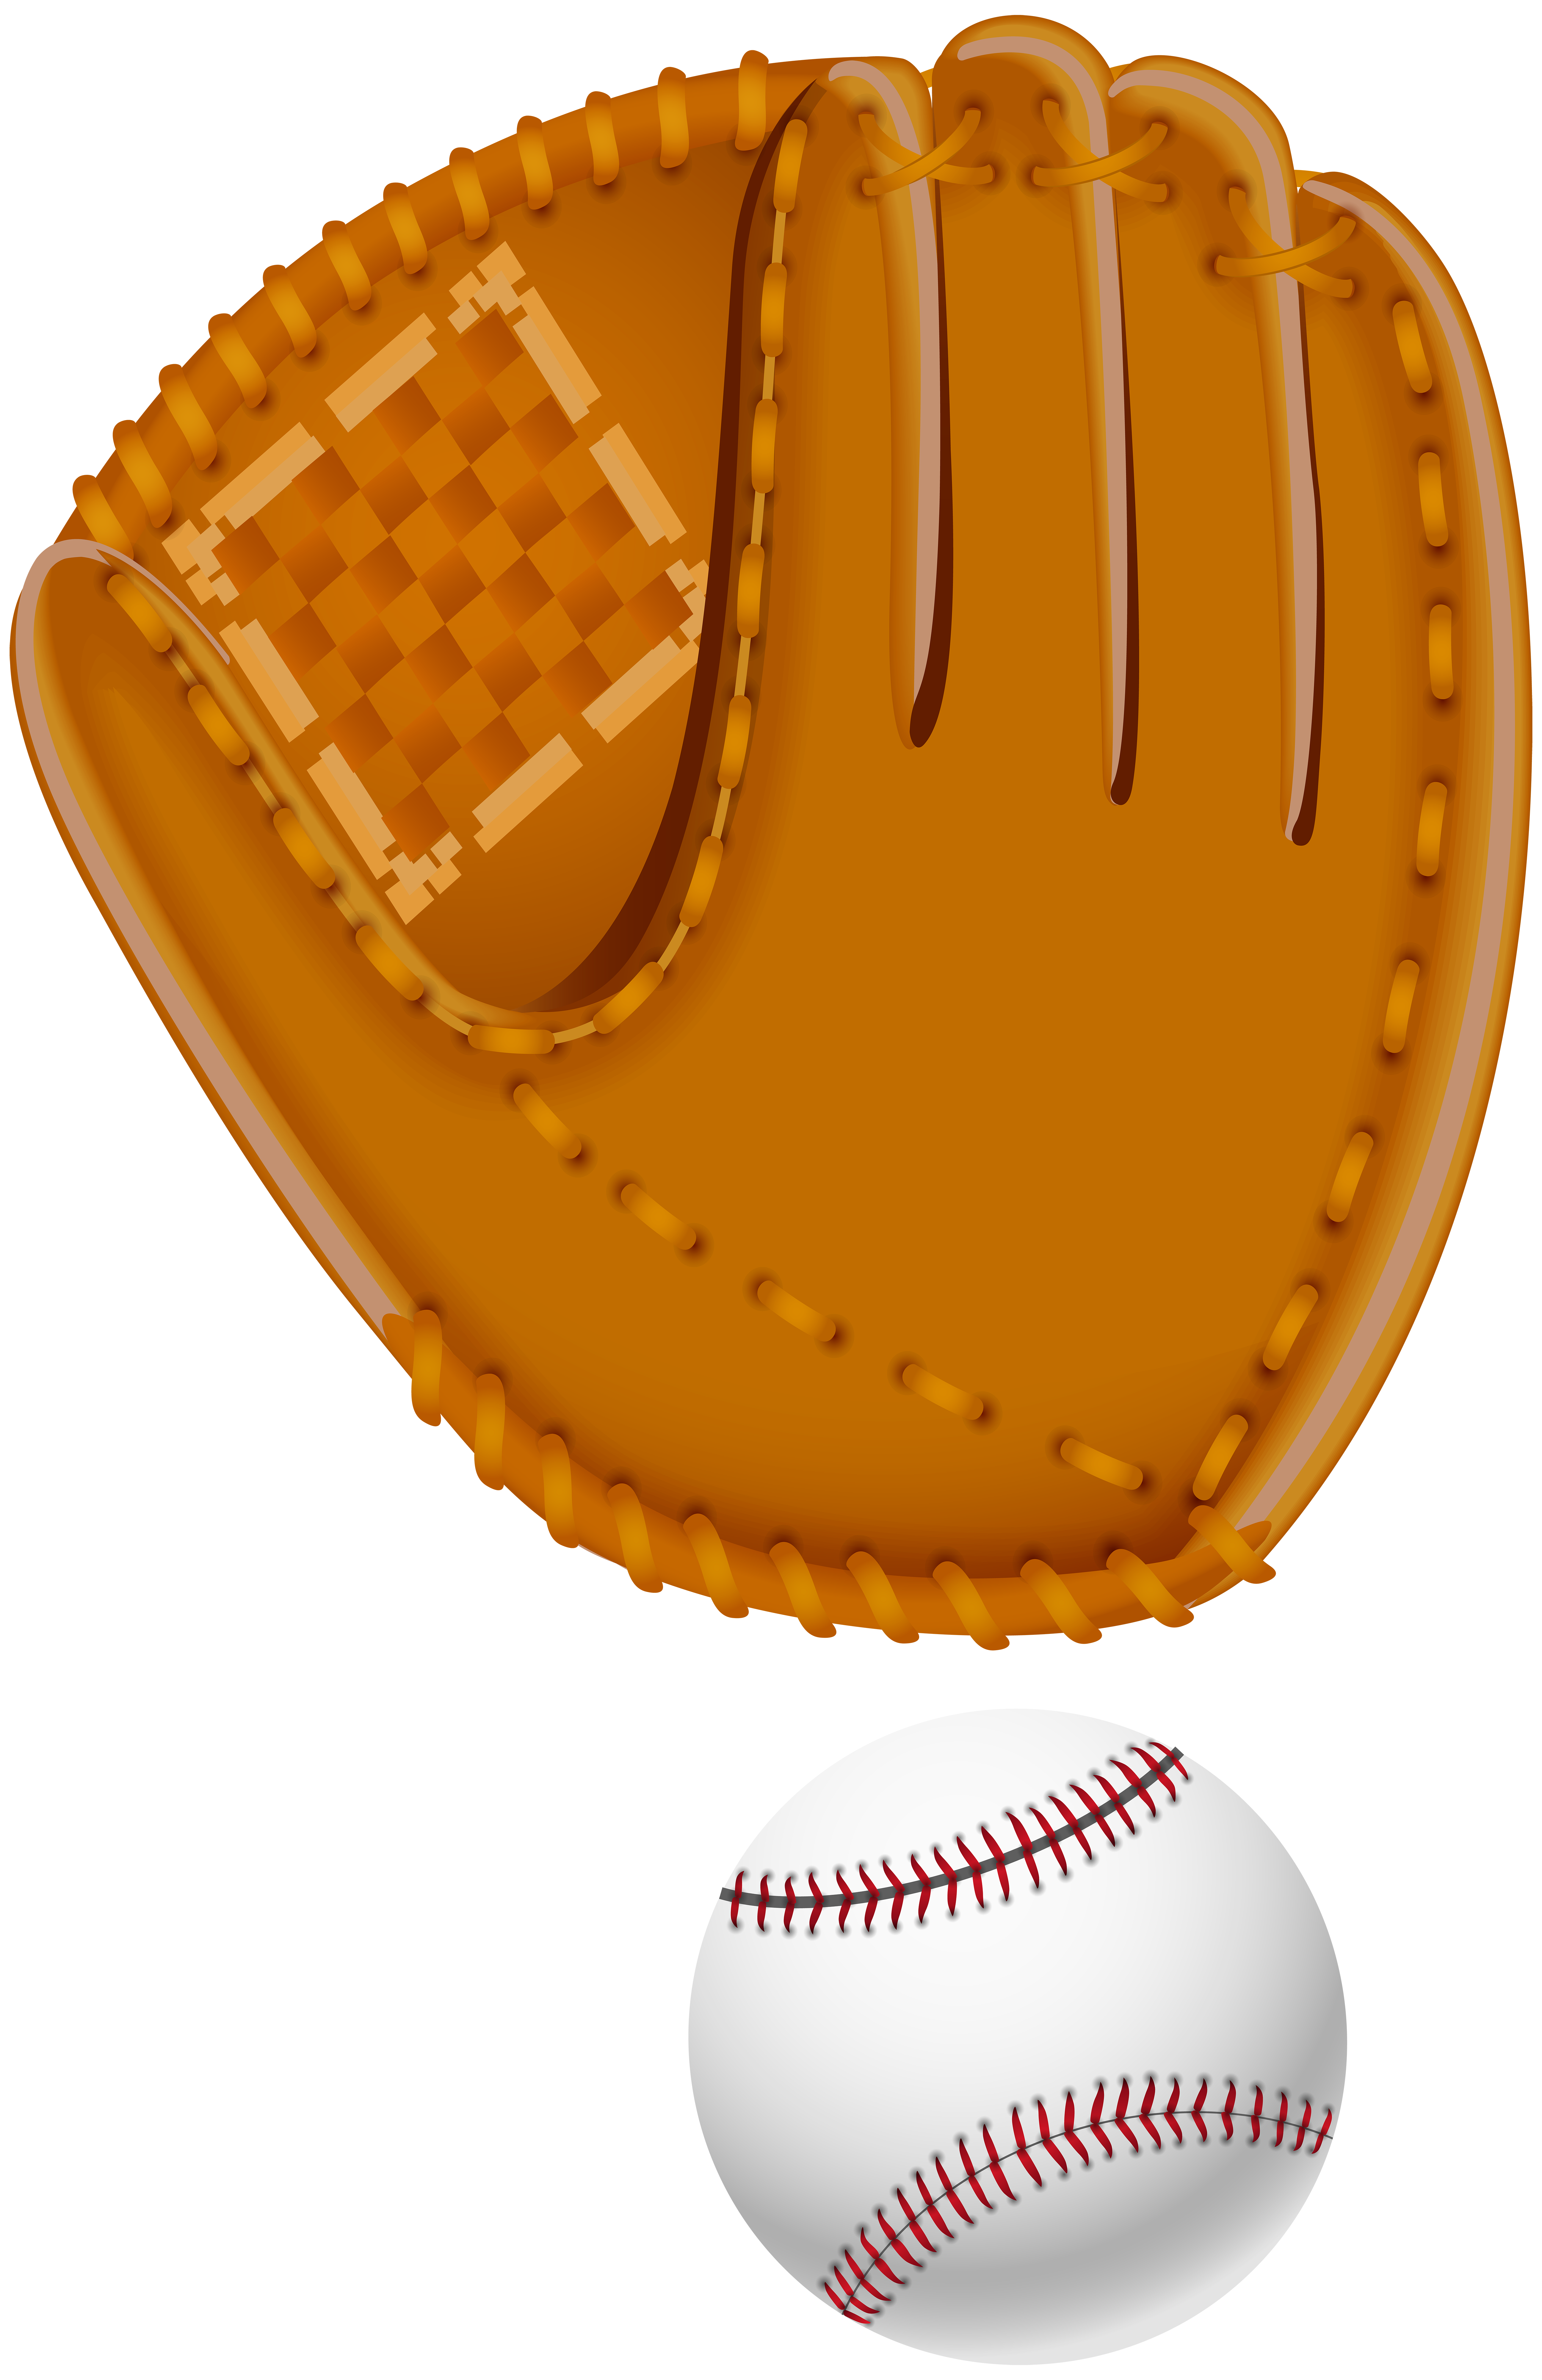 Clipart of baseball gear png freeuse stock Baseball Glove Clip Art Image | Gallery Yopriceville - High-Quality ... png freeuse stock